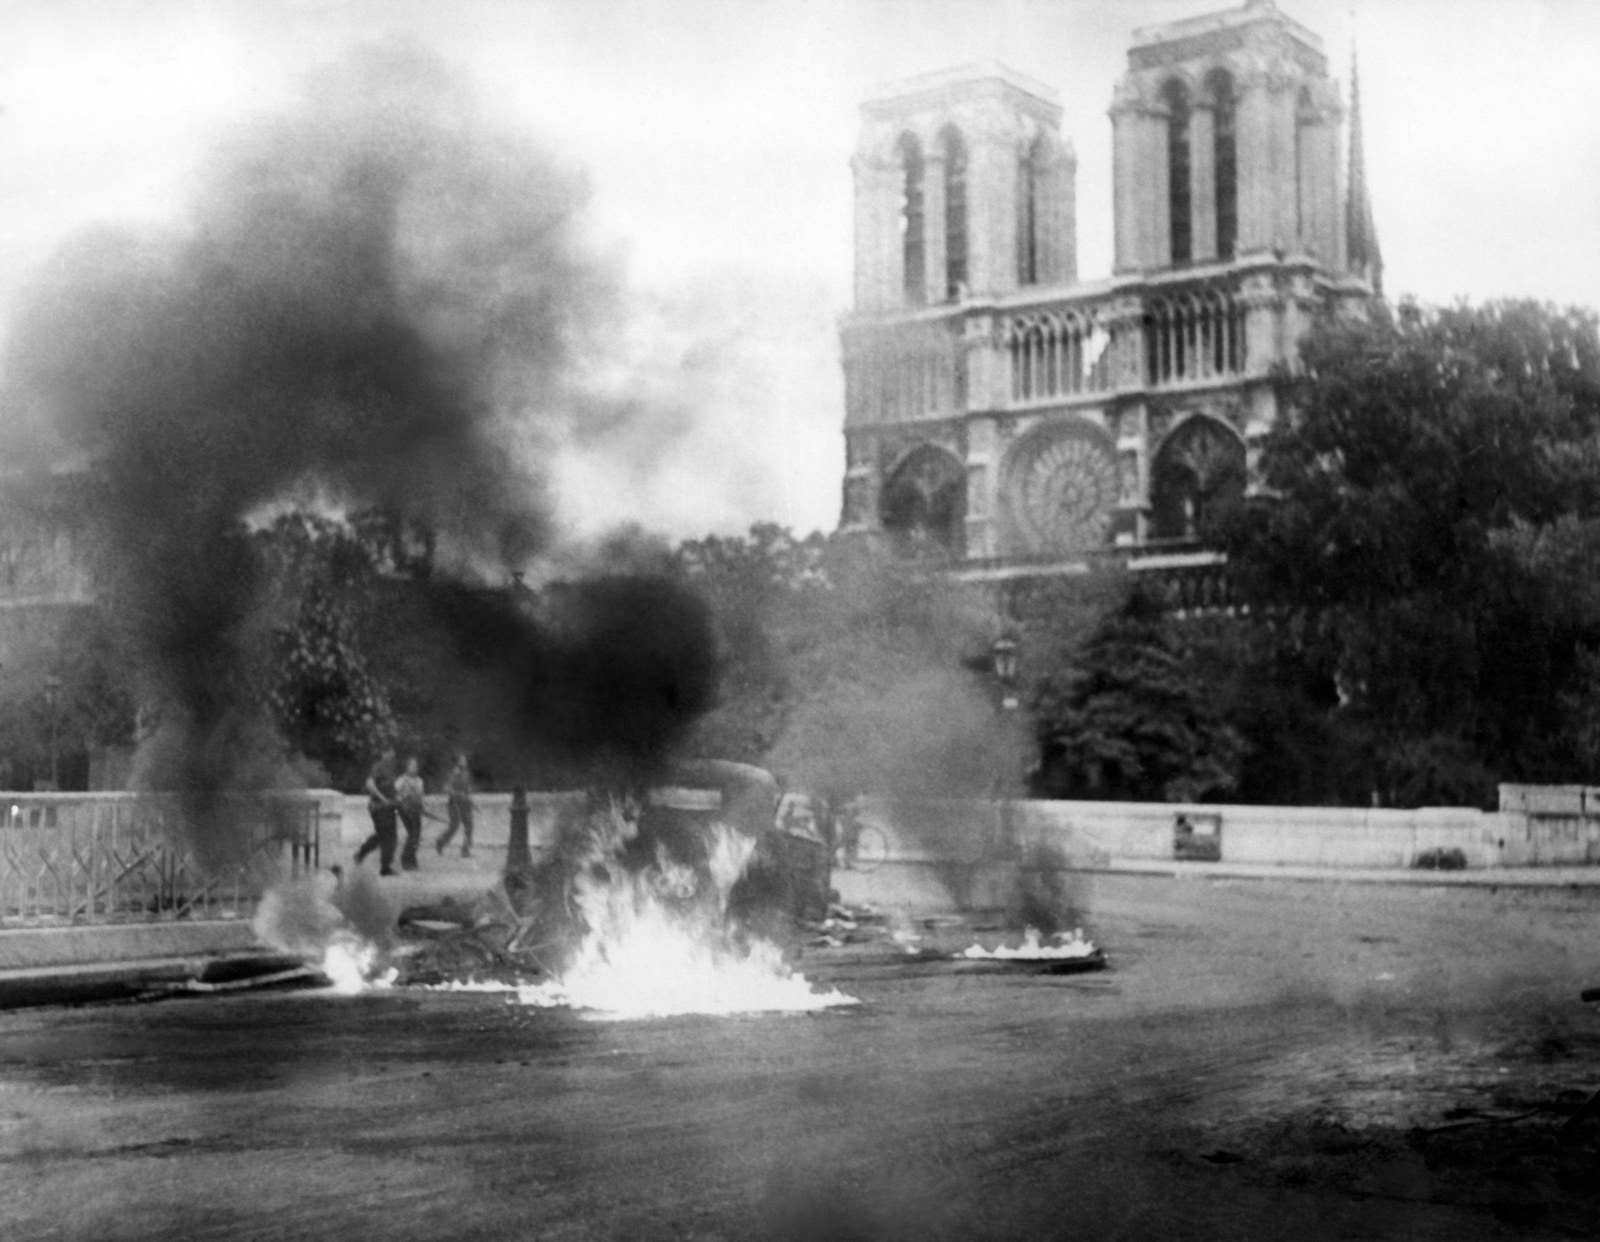 """A photo taken circa Aug. 23, 1944 during World War II shows a flaming vehicle close to the Pont Saint-Michel and Notre Dame Cathedral Notre-Dame as part of the """"Battle of Paris"""" opposing the French Forces of the Interior and remaining Nazi forces, a few days before the Liberation of Paris on Aug. 25, 1944."""